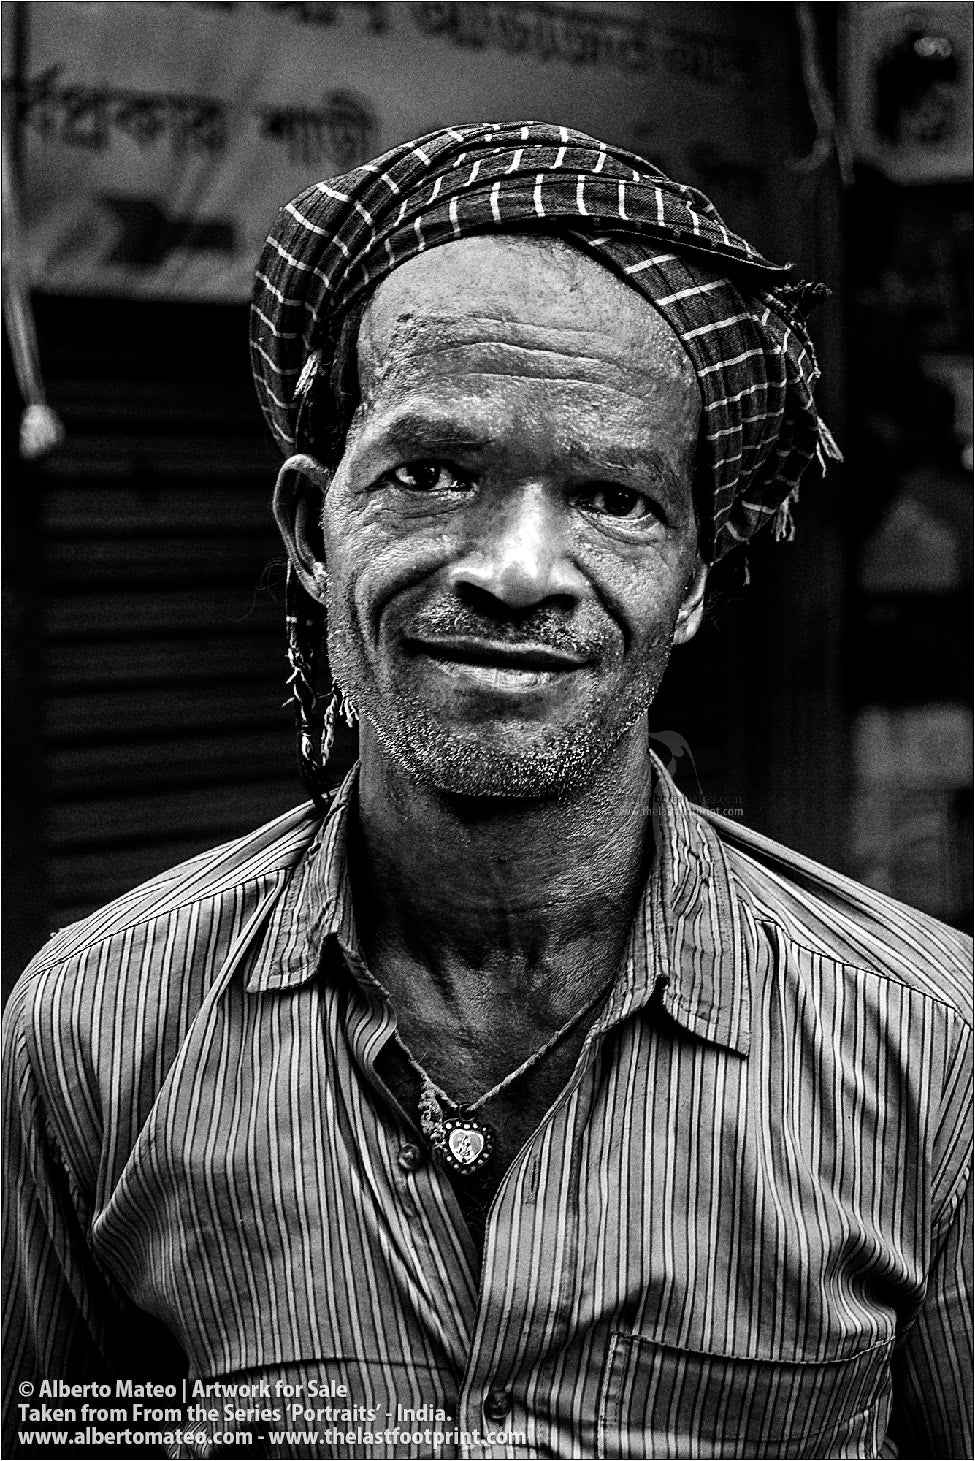 Portrait of Smiling Porter in Bara Bazar, Kolkata, India. [BLACK AND WHITE]